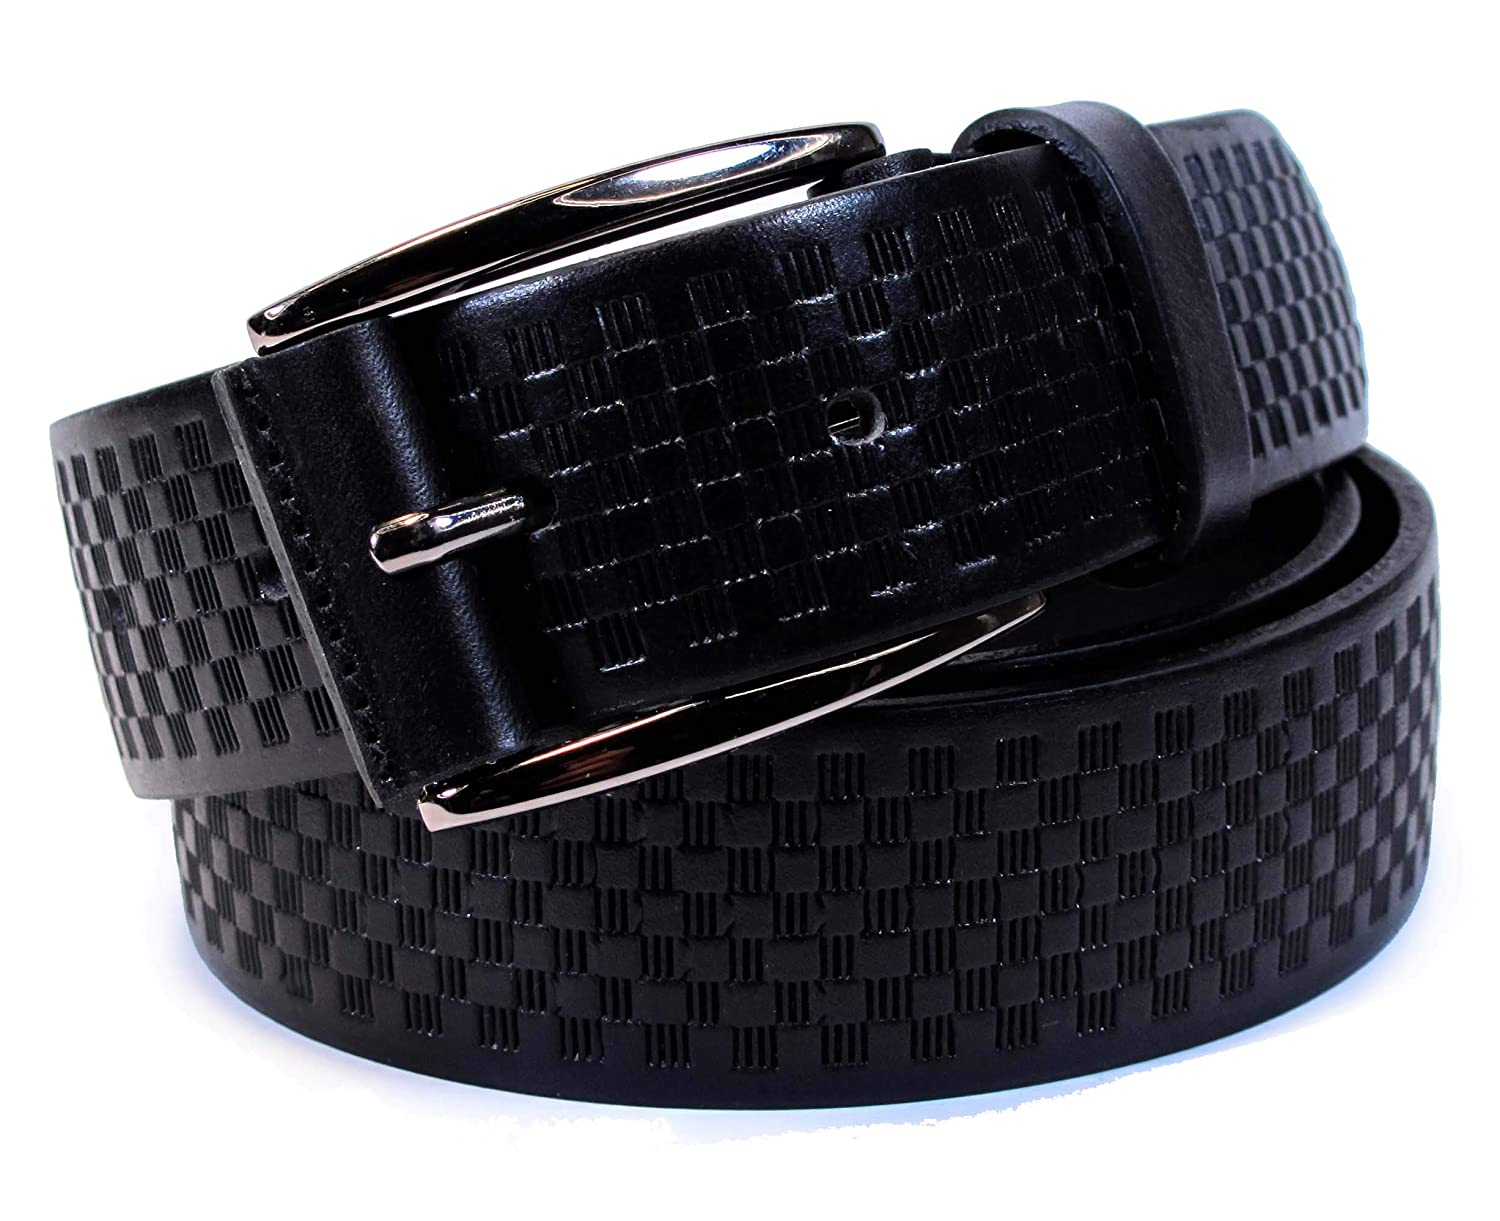 , Black 42 Waist 40, Total 49 Mens Real Genuine Leather Belt Black Brown White 1.25 Wide S-XL Casual Jeans CU0